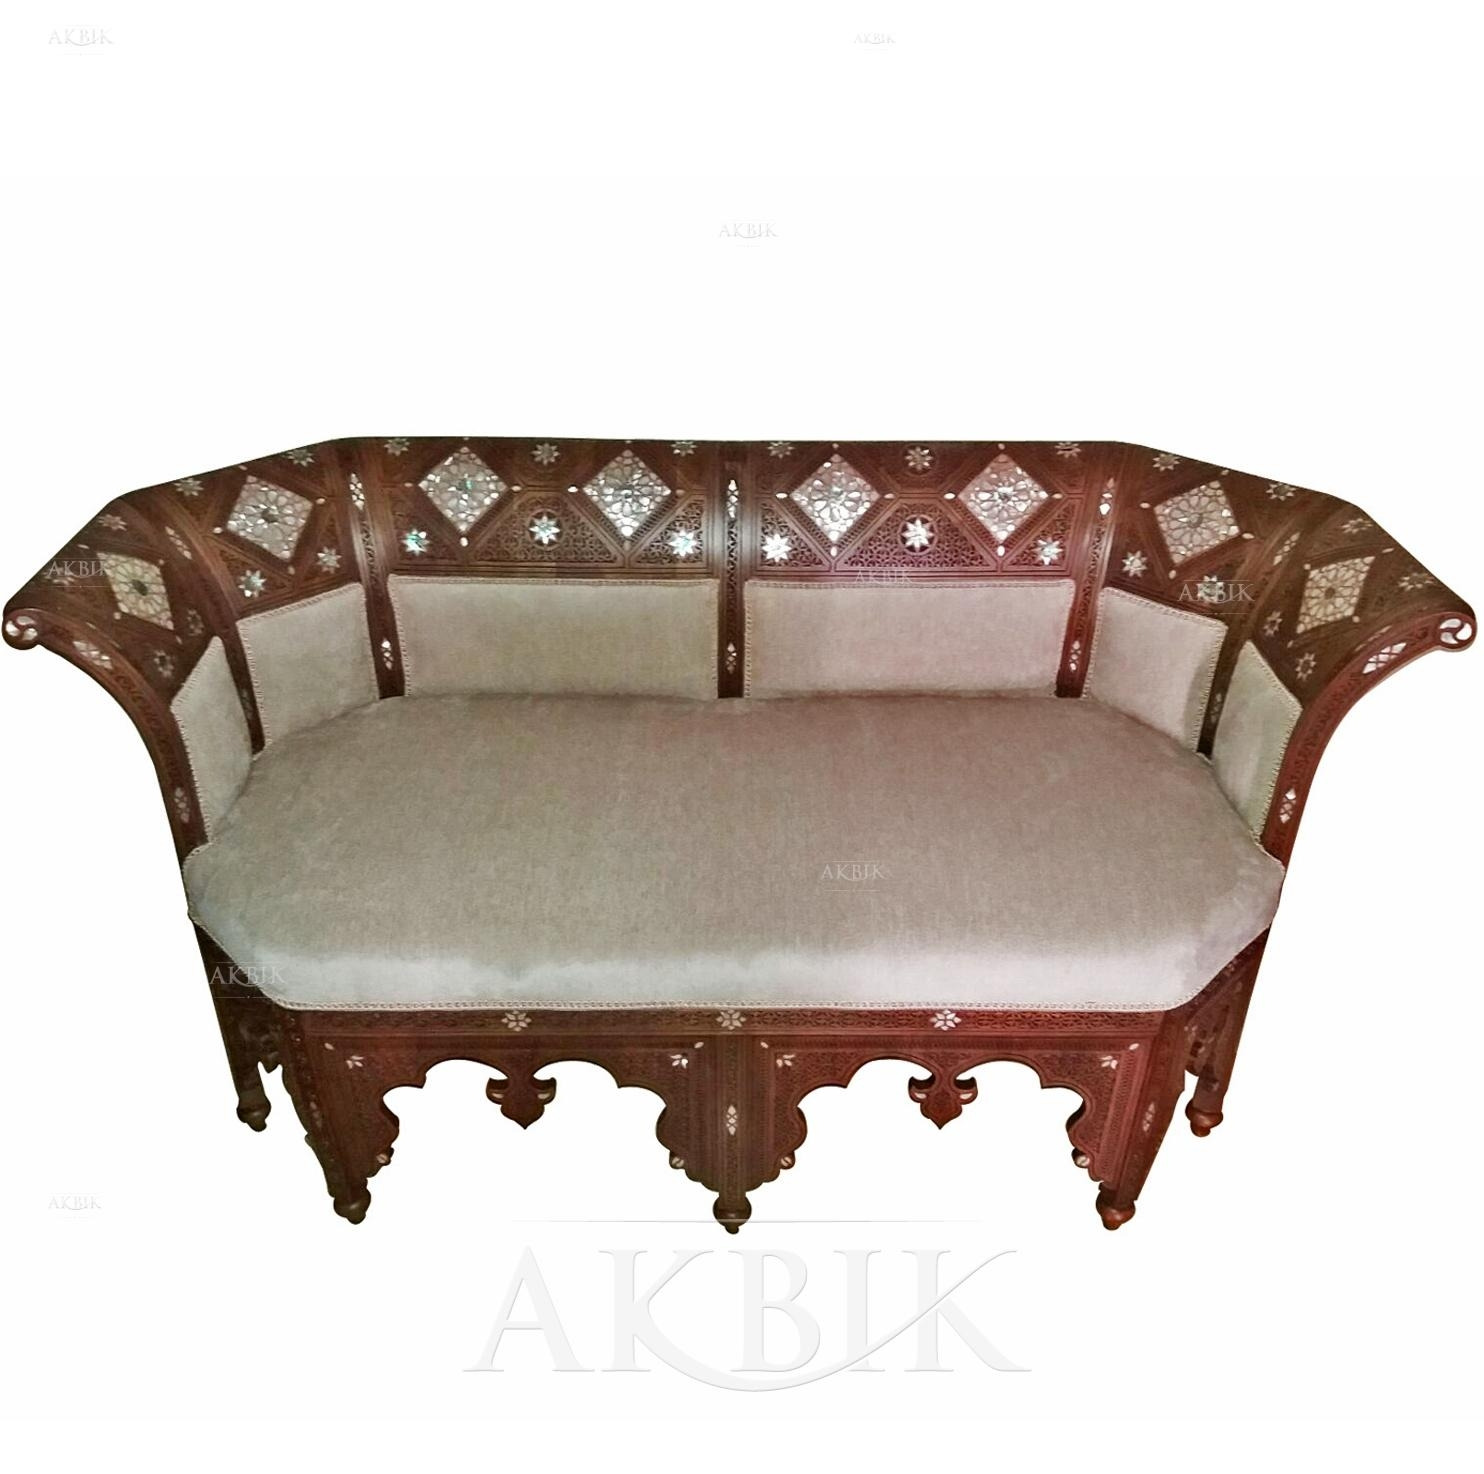 Mediterranean, Levantine & Syrian Furniture Inlaid With Mother Of With Regard To Bench Style Sofas (Image 14 of 20)